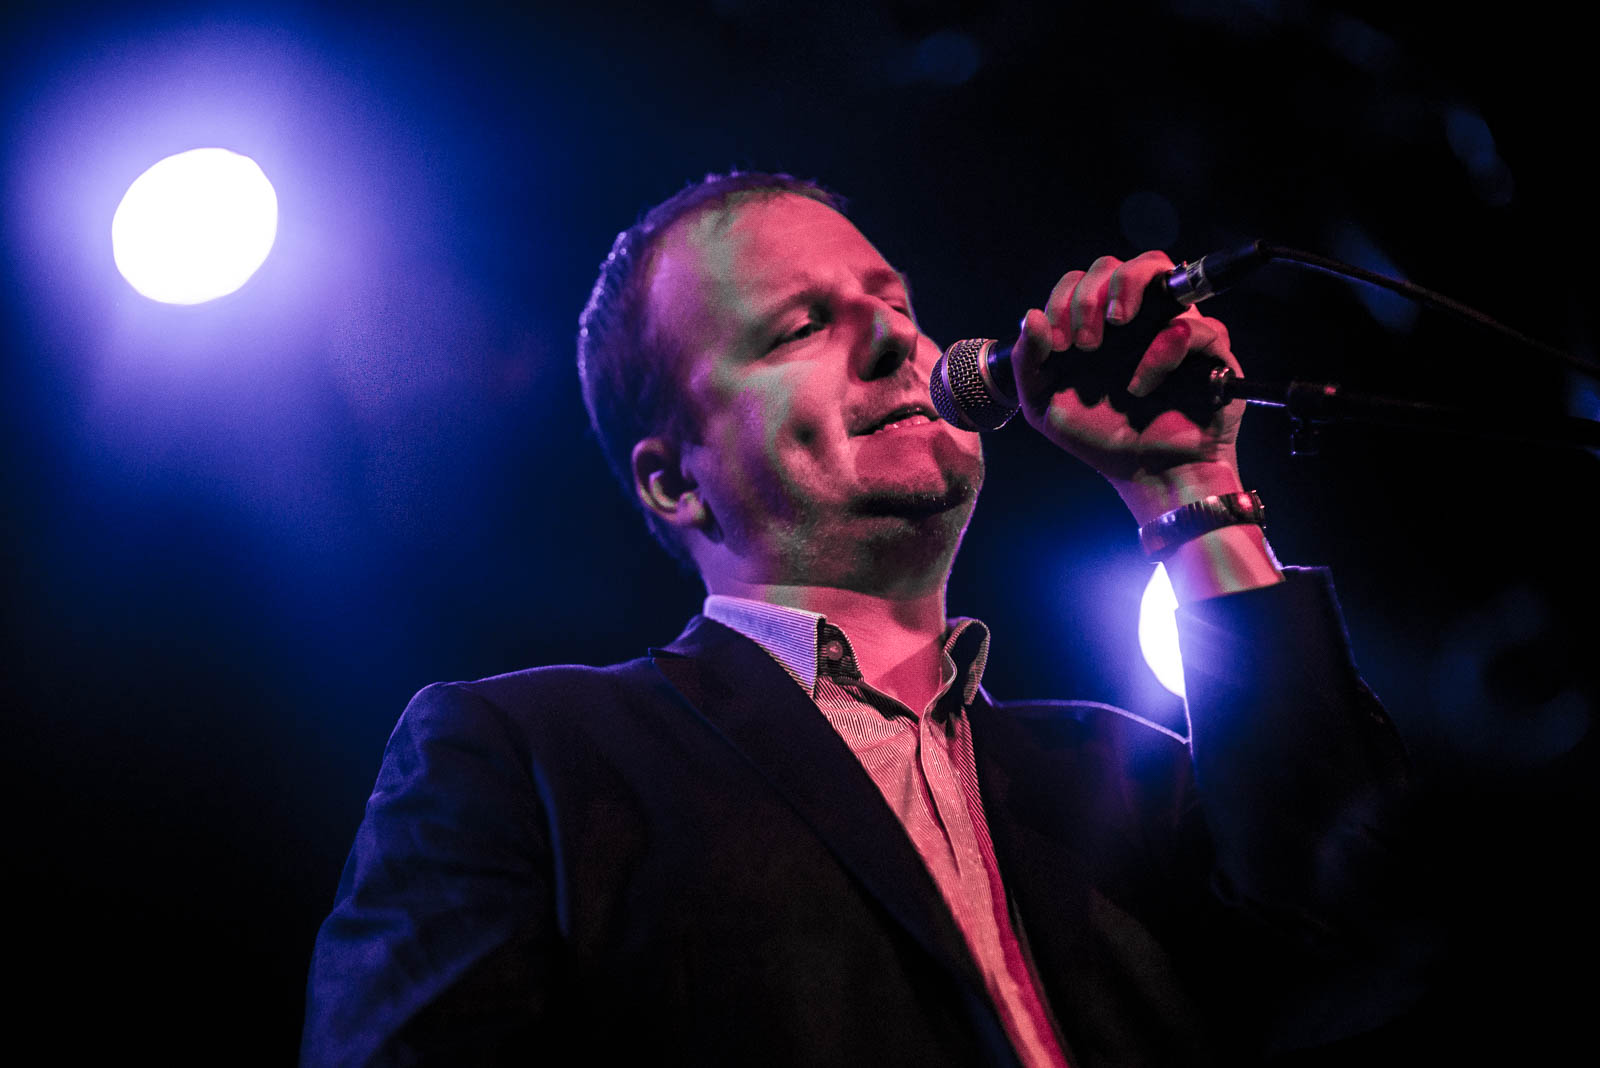 Protomartyr at Music Hall of Williamsburg on Saturday, October 28, 2017.